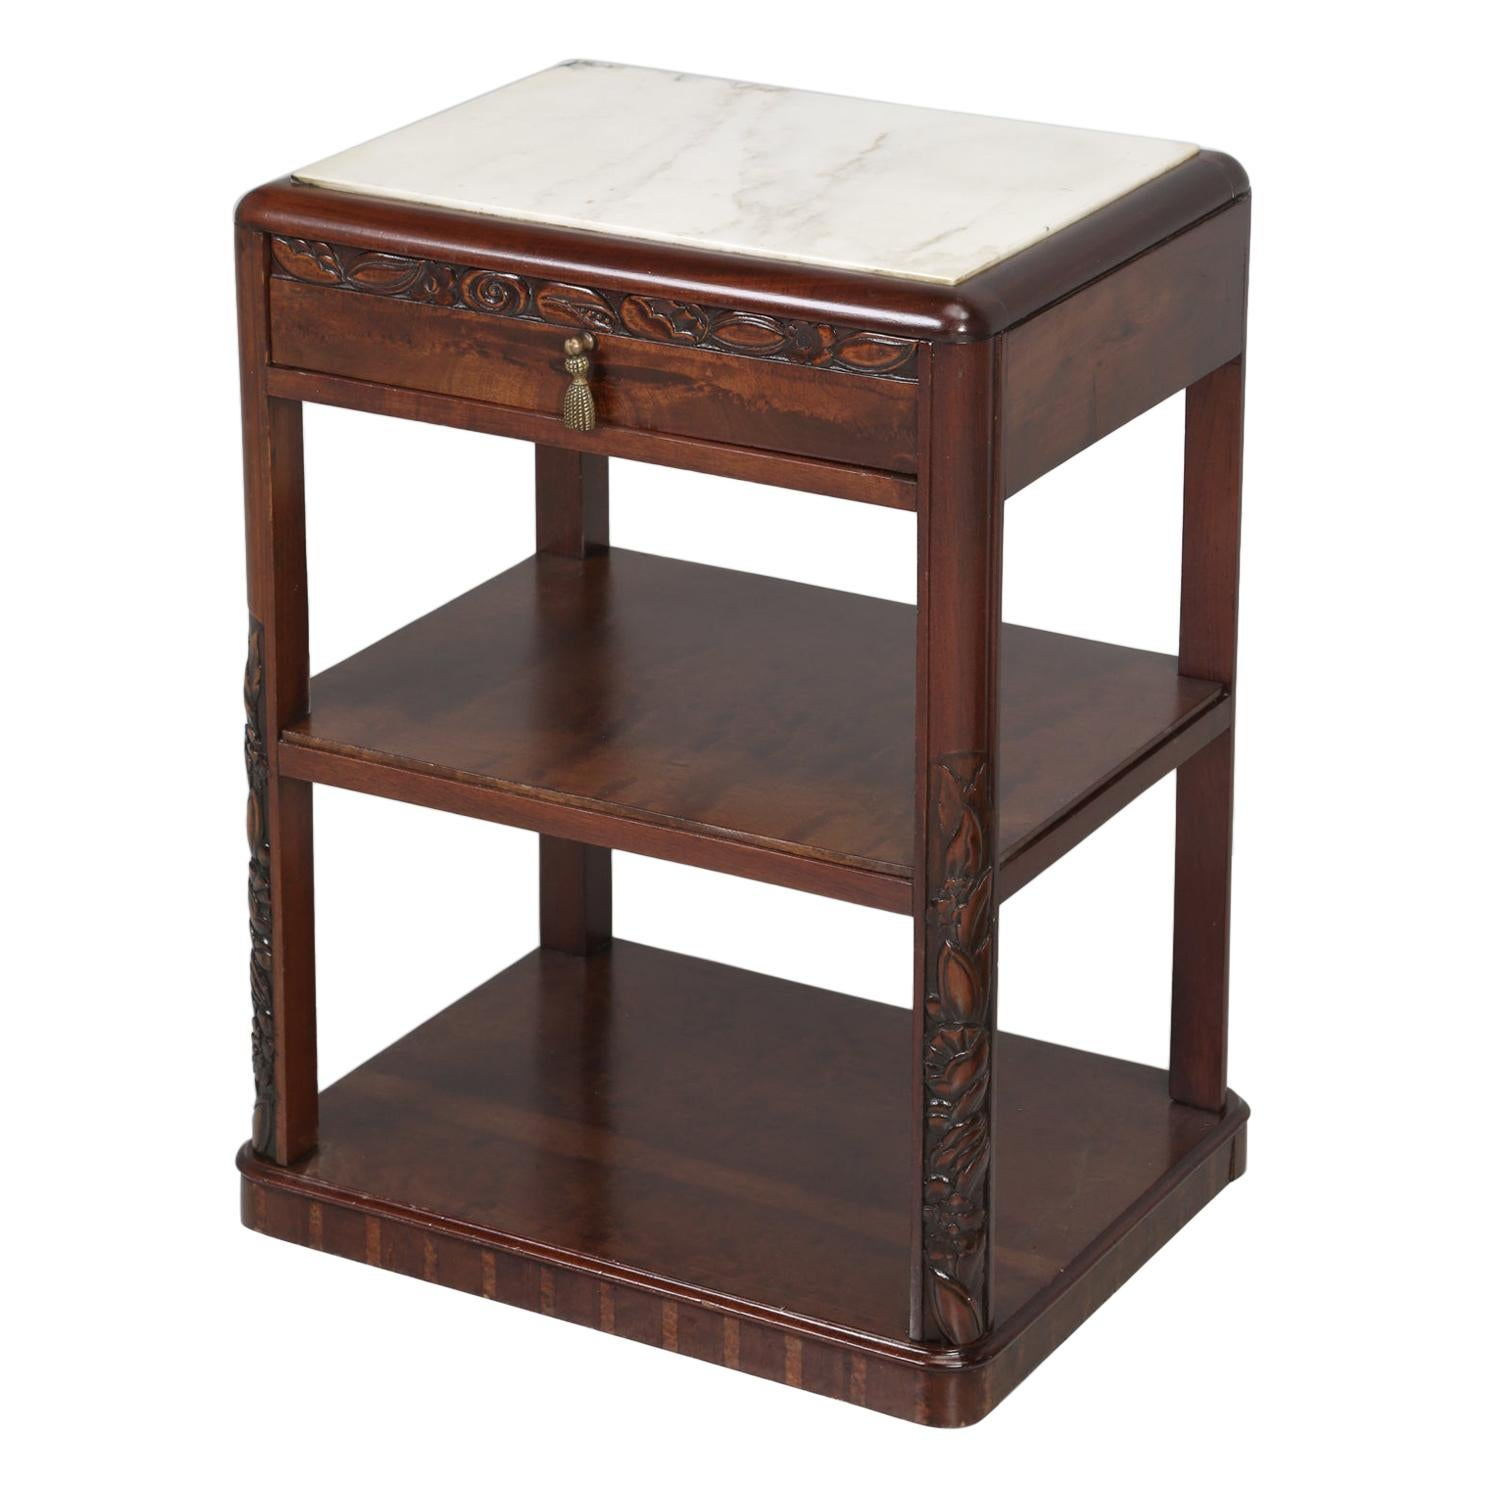 Vintage American Mahogany End Table, Nightstand or Side Table, Restored